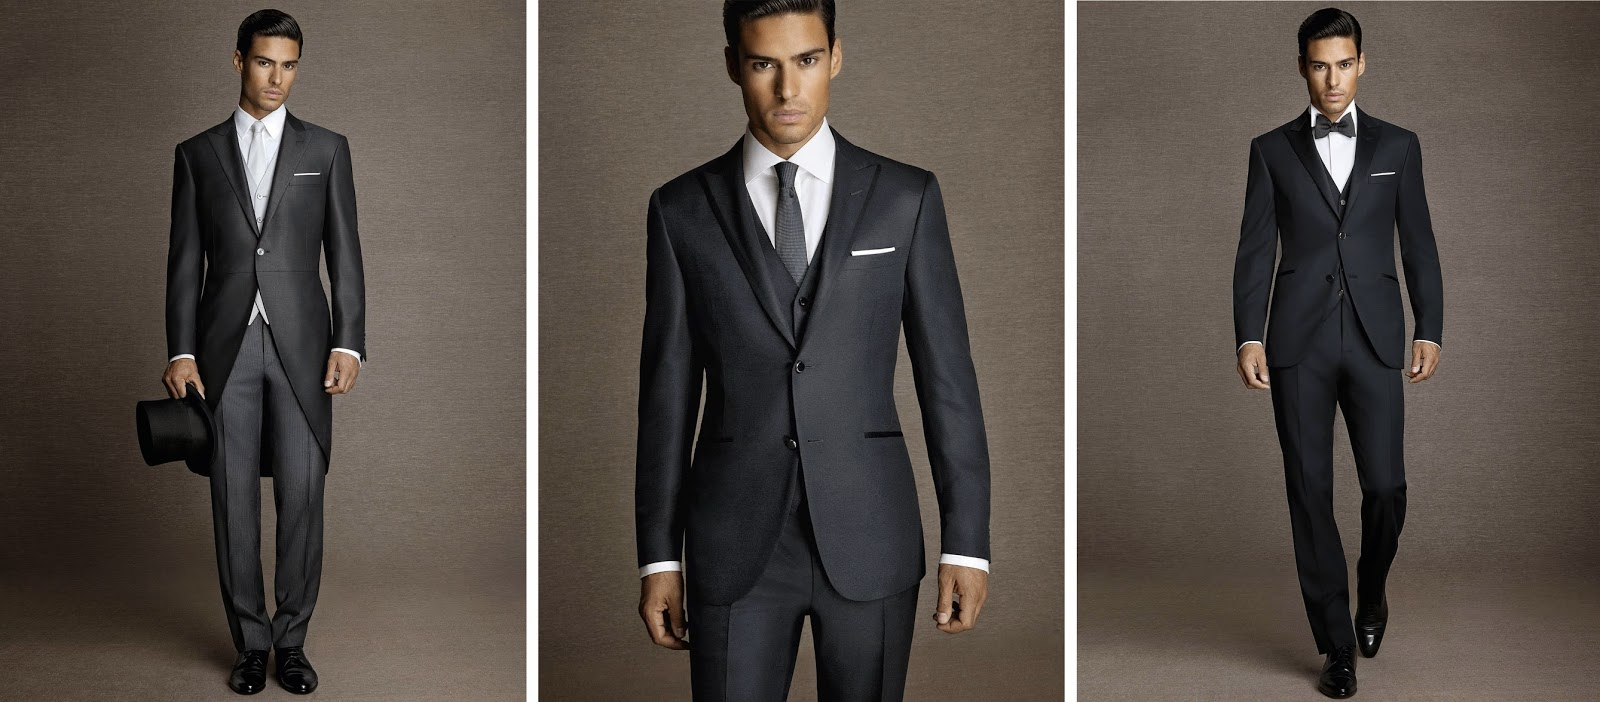 Reglas de estilo, esmoquin, estilo, lifestyle, Suits and Shirts, elegancia, eventos,